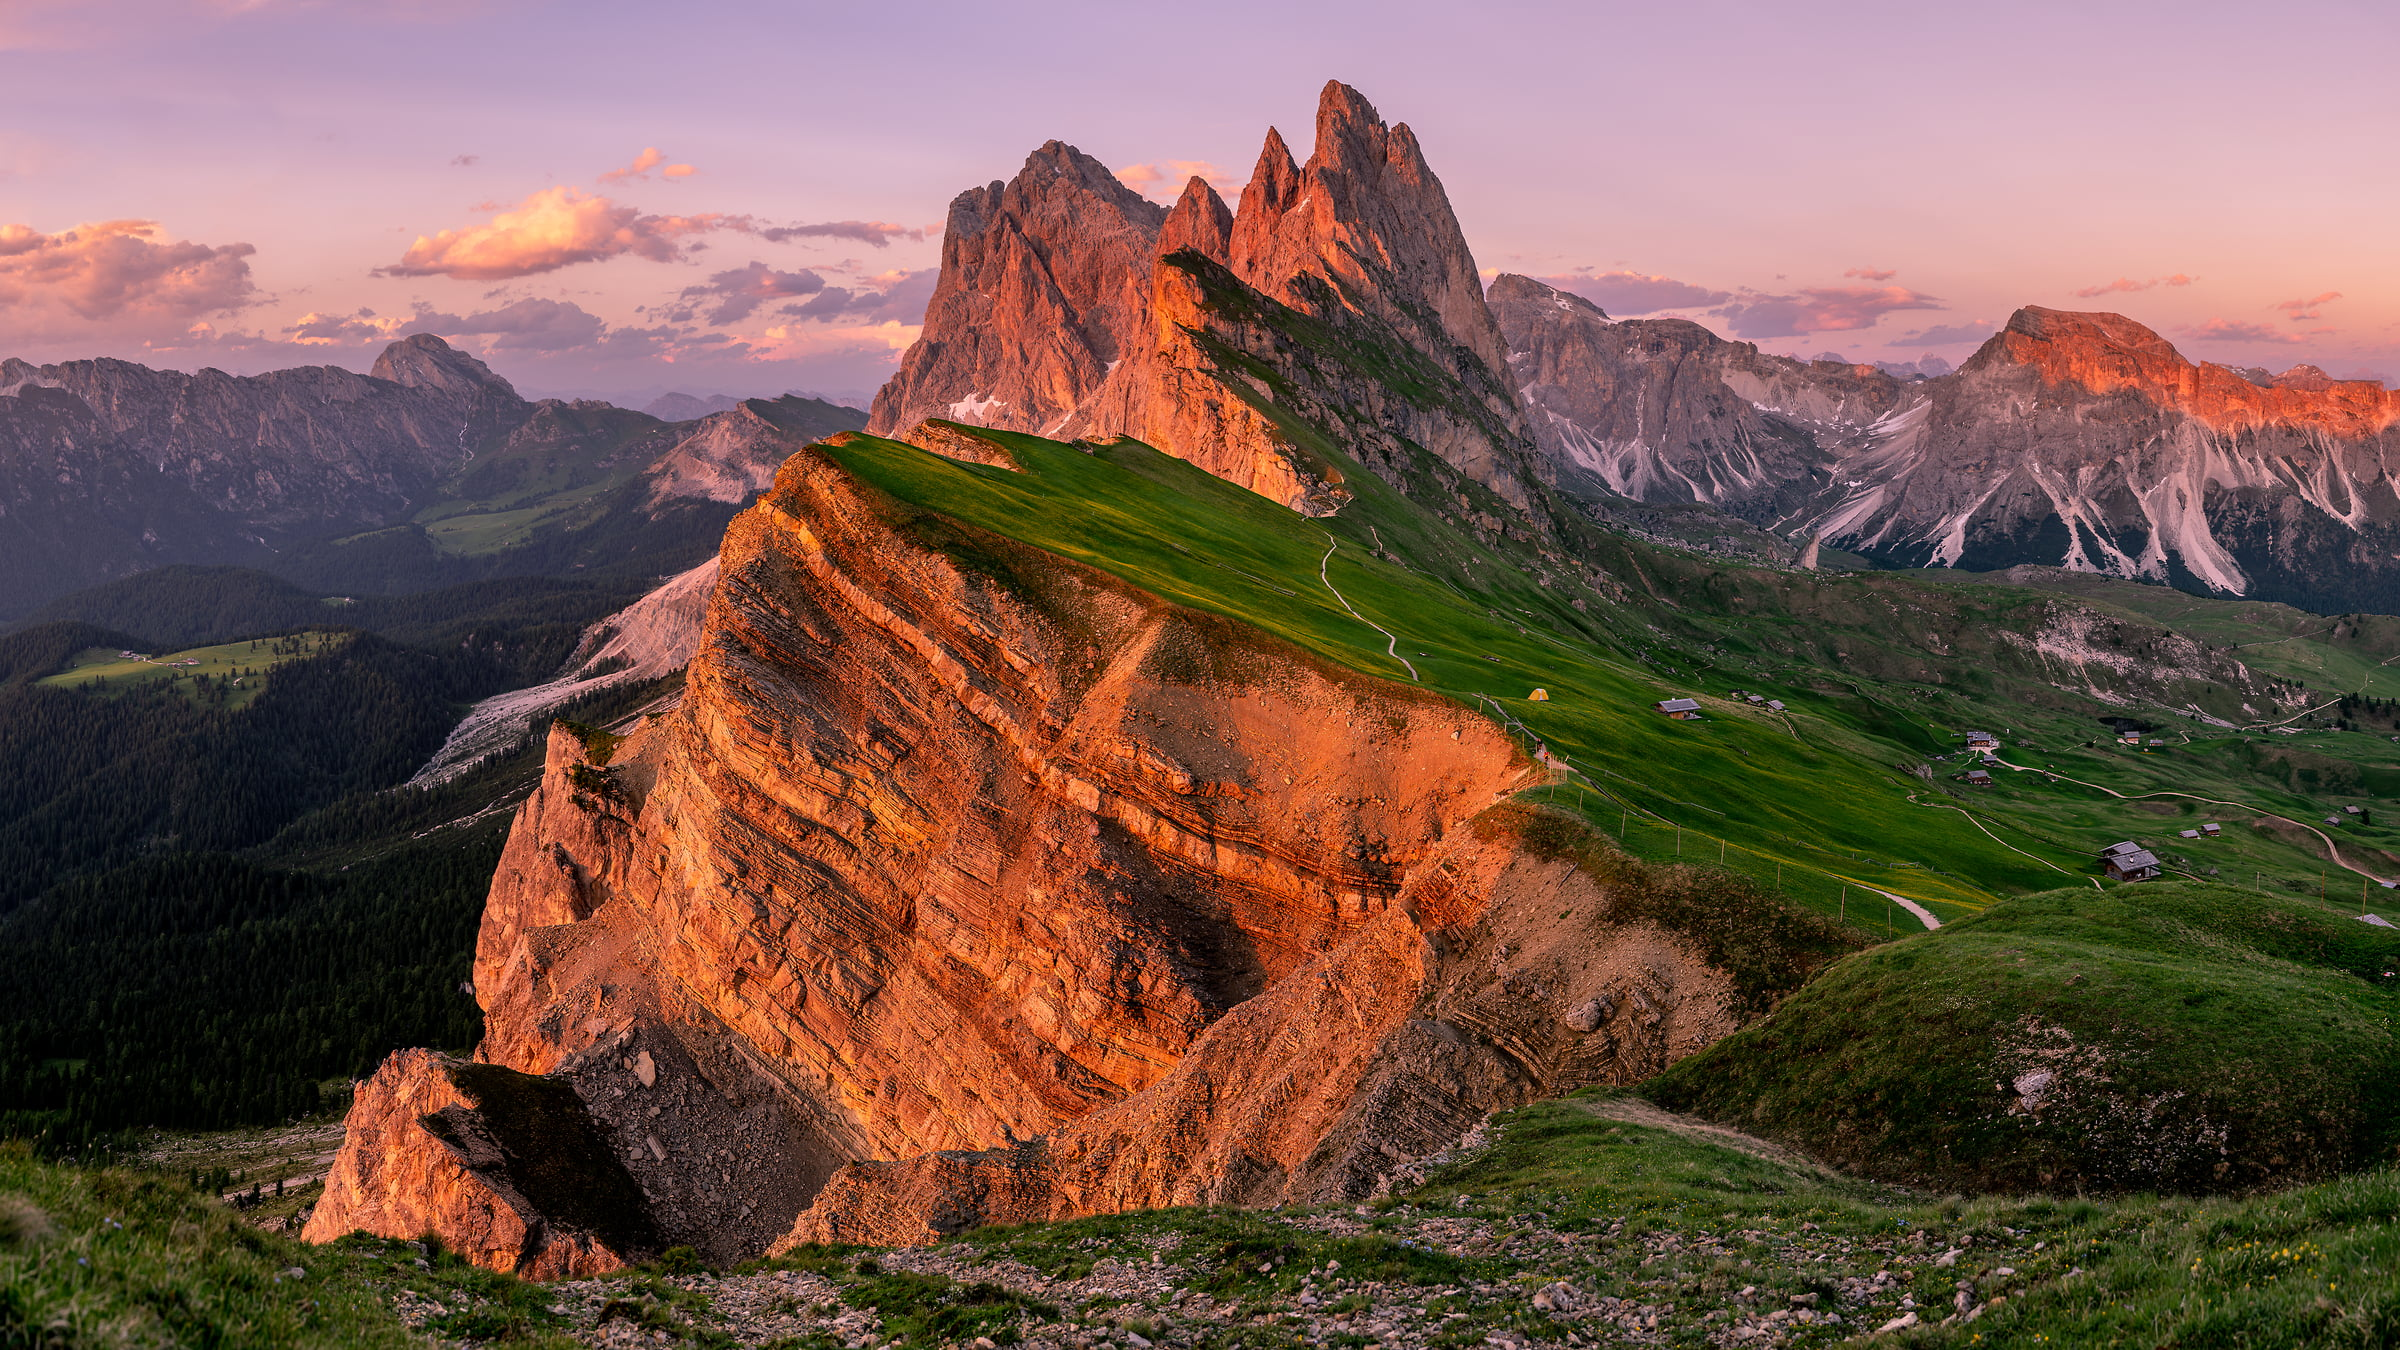 376 megapixels! A very high resolution, large-format VAST photo print of a landscape at sunset; landscape photograph created by Tim Shields in Seceda, Santa Cristina Valgardena, Italy